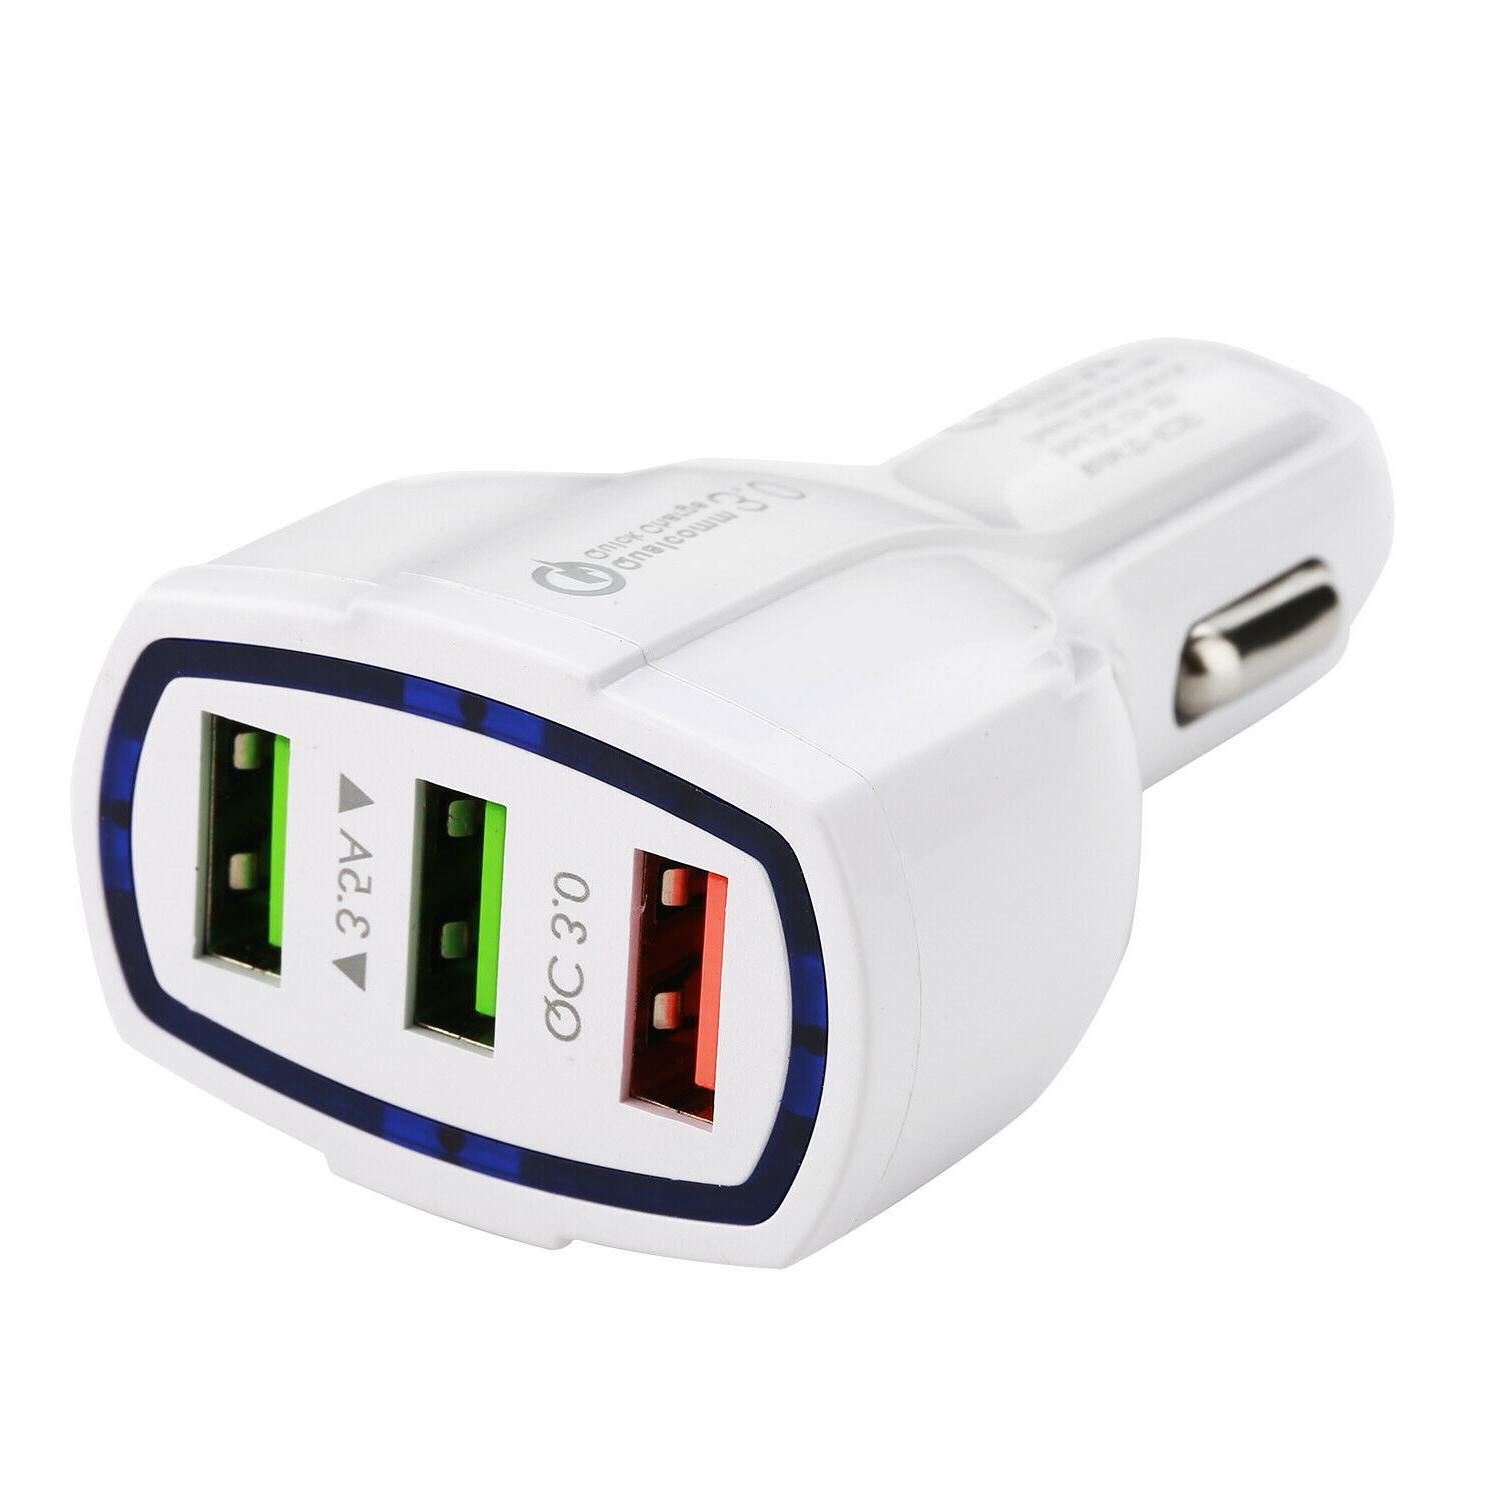 QC Fast CAR USB For Android or